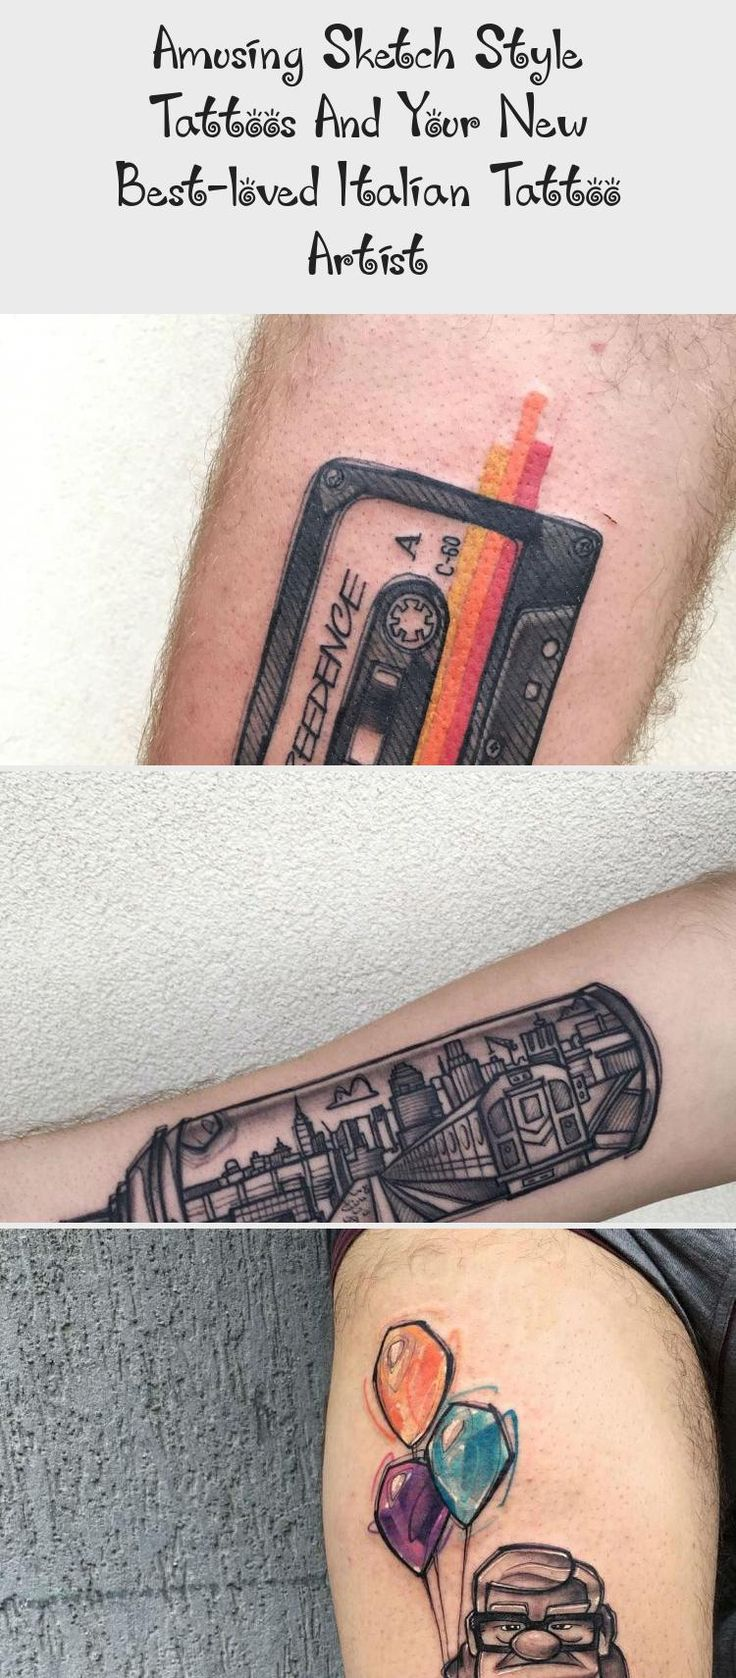 Amusing sketch style tattoos and your new bestloved